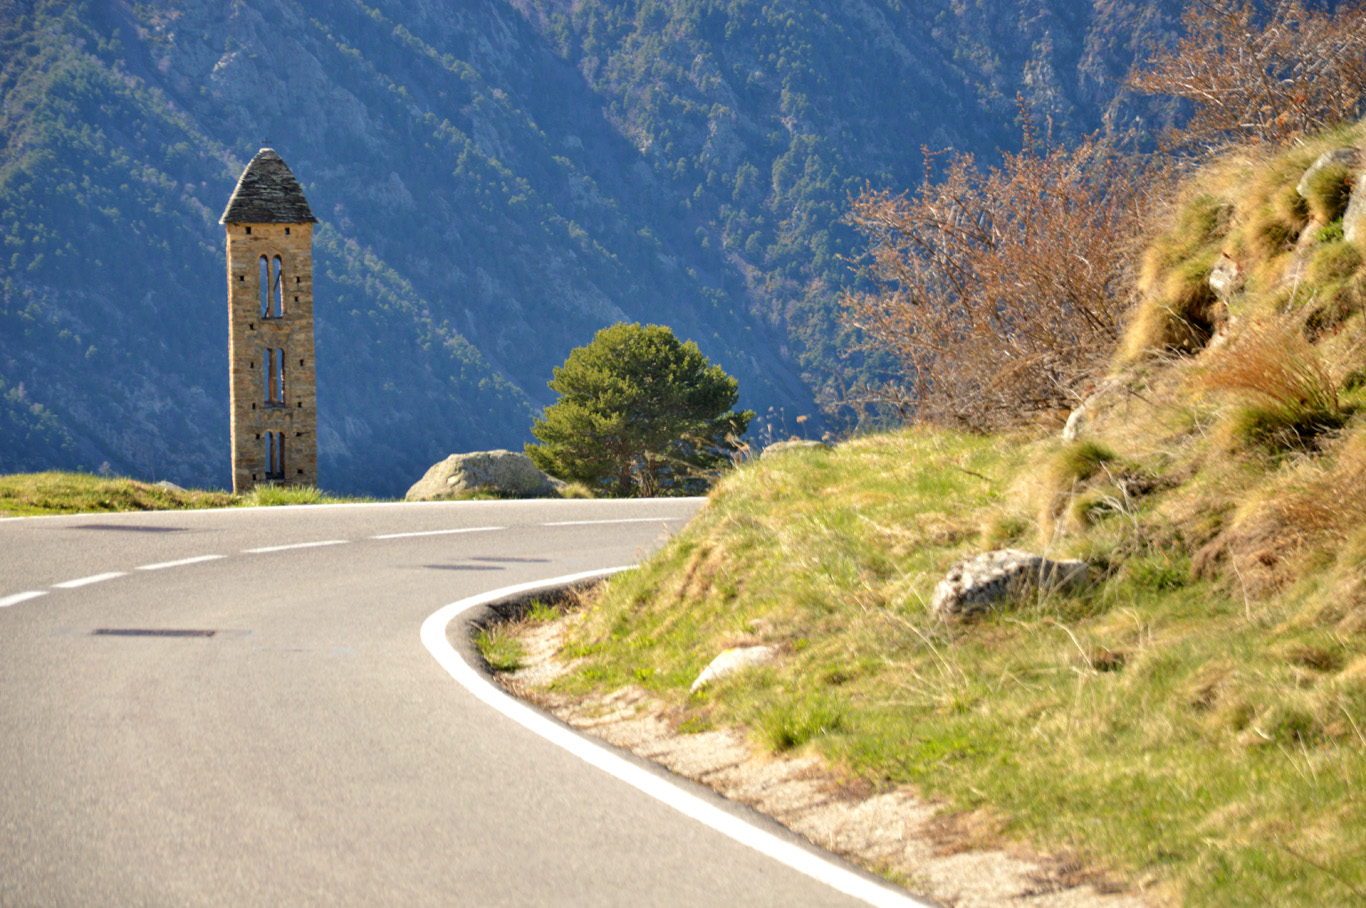 The road and the church tower